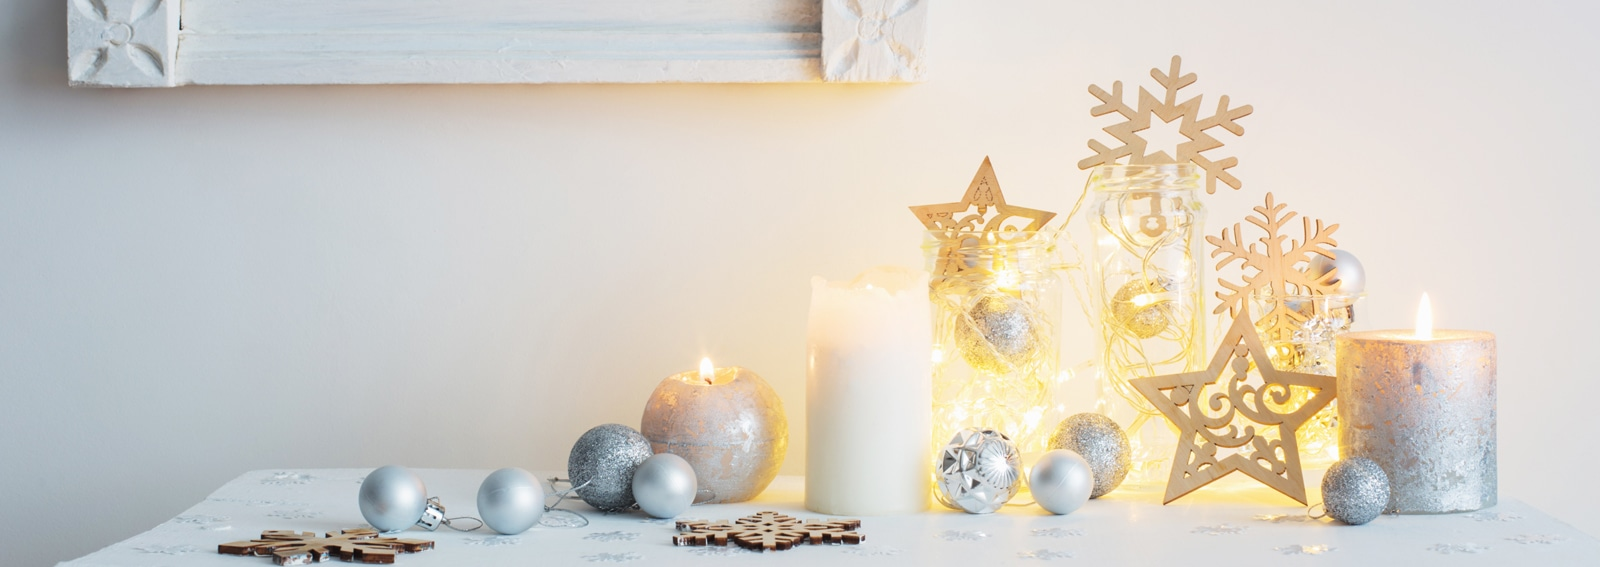 Christmas decoration with candles on background  white wall